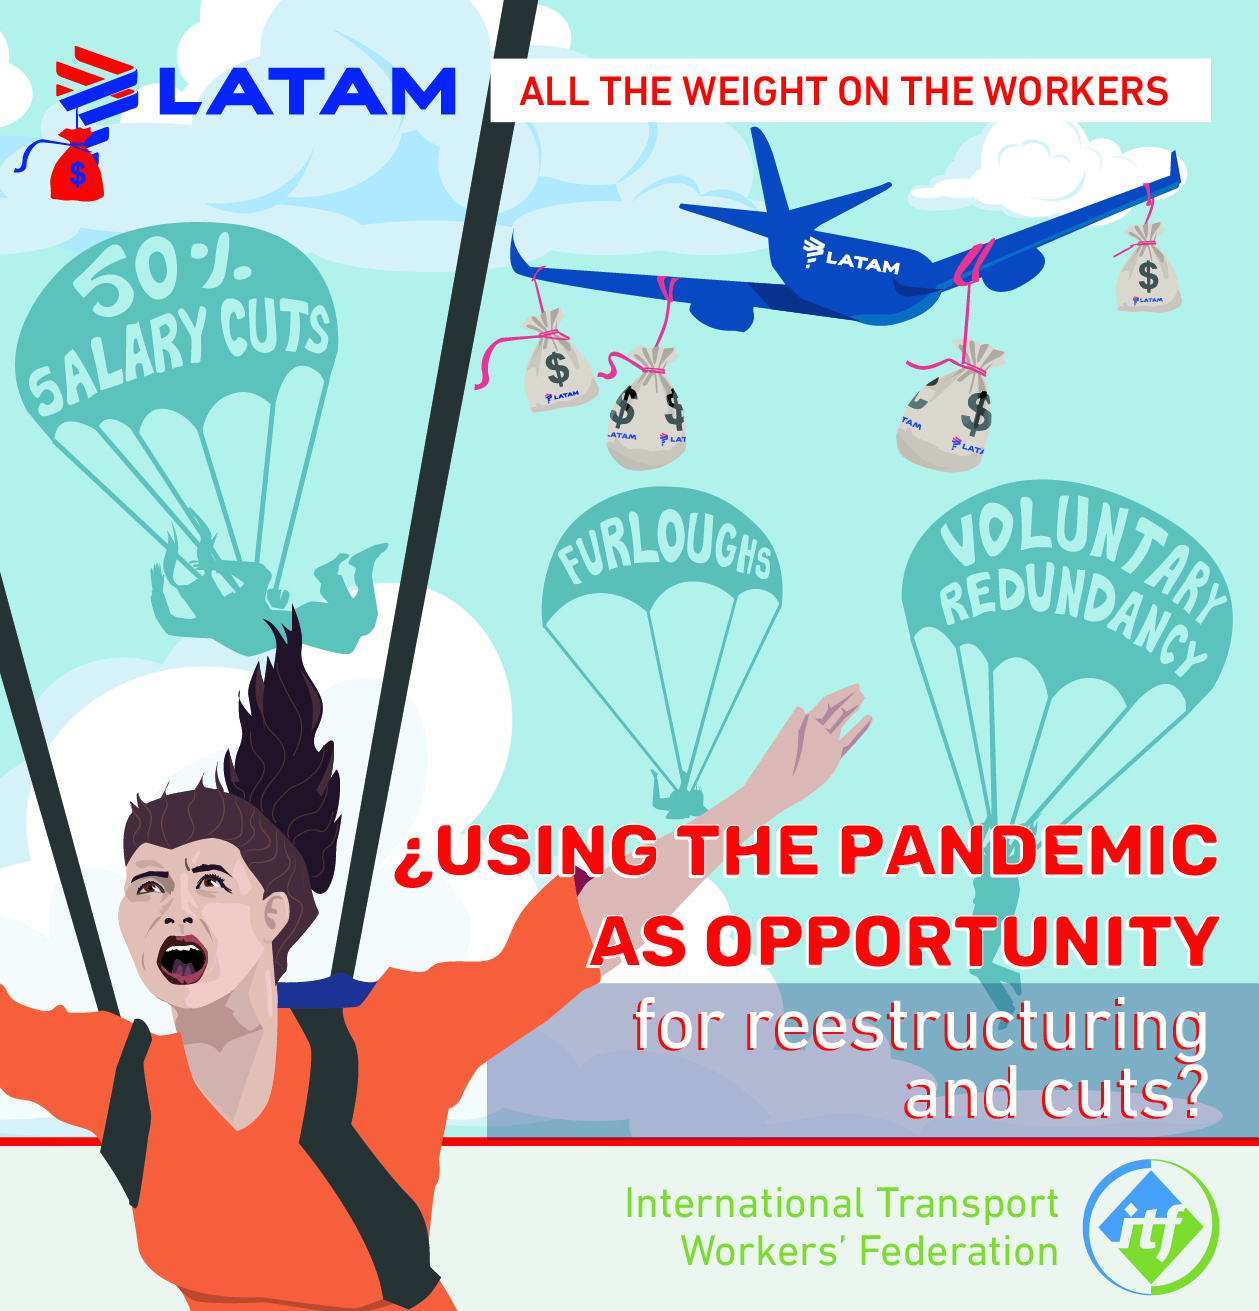 #LATAM why are workers shouldering the full weight of the #COVID-19 crisis?